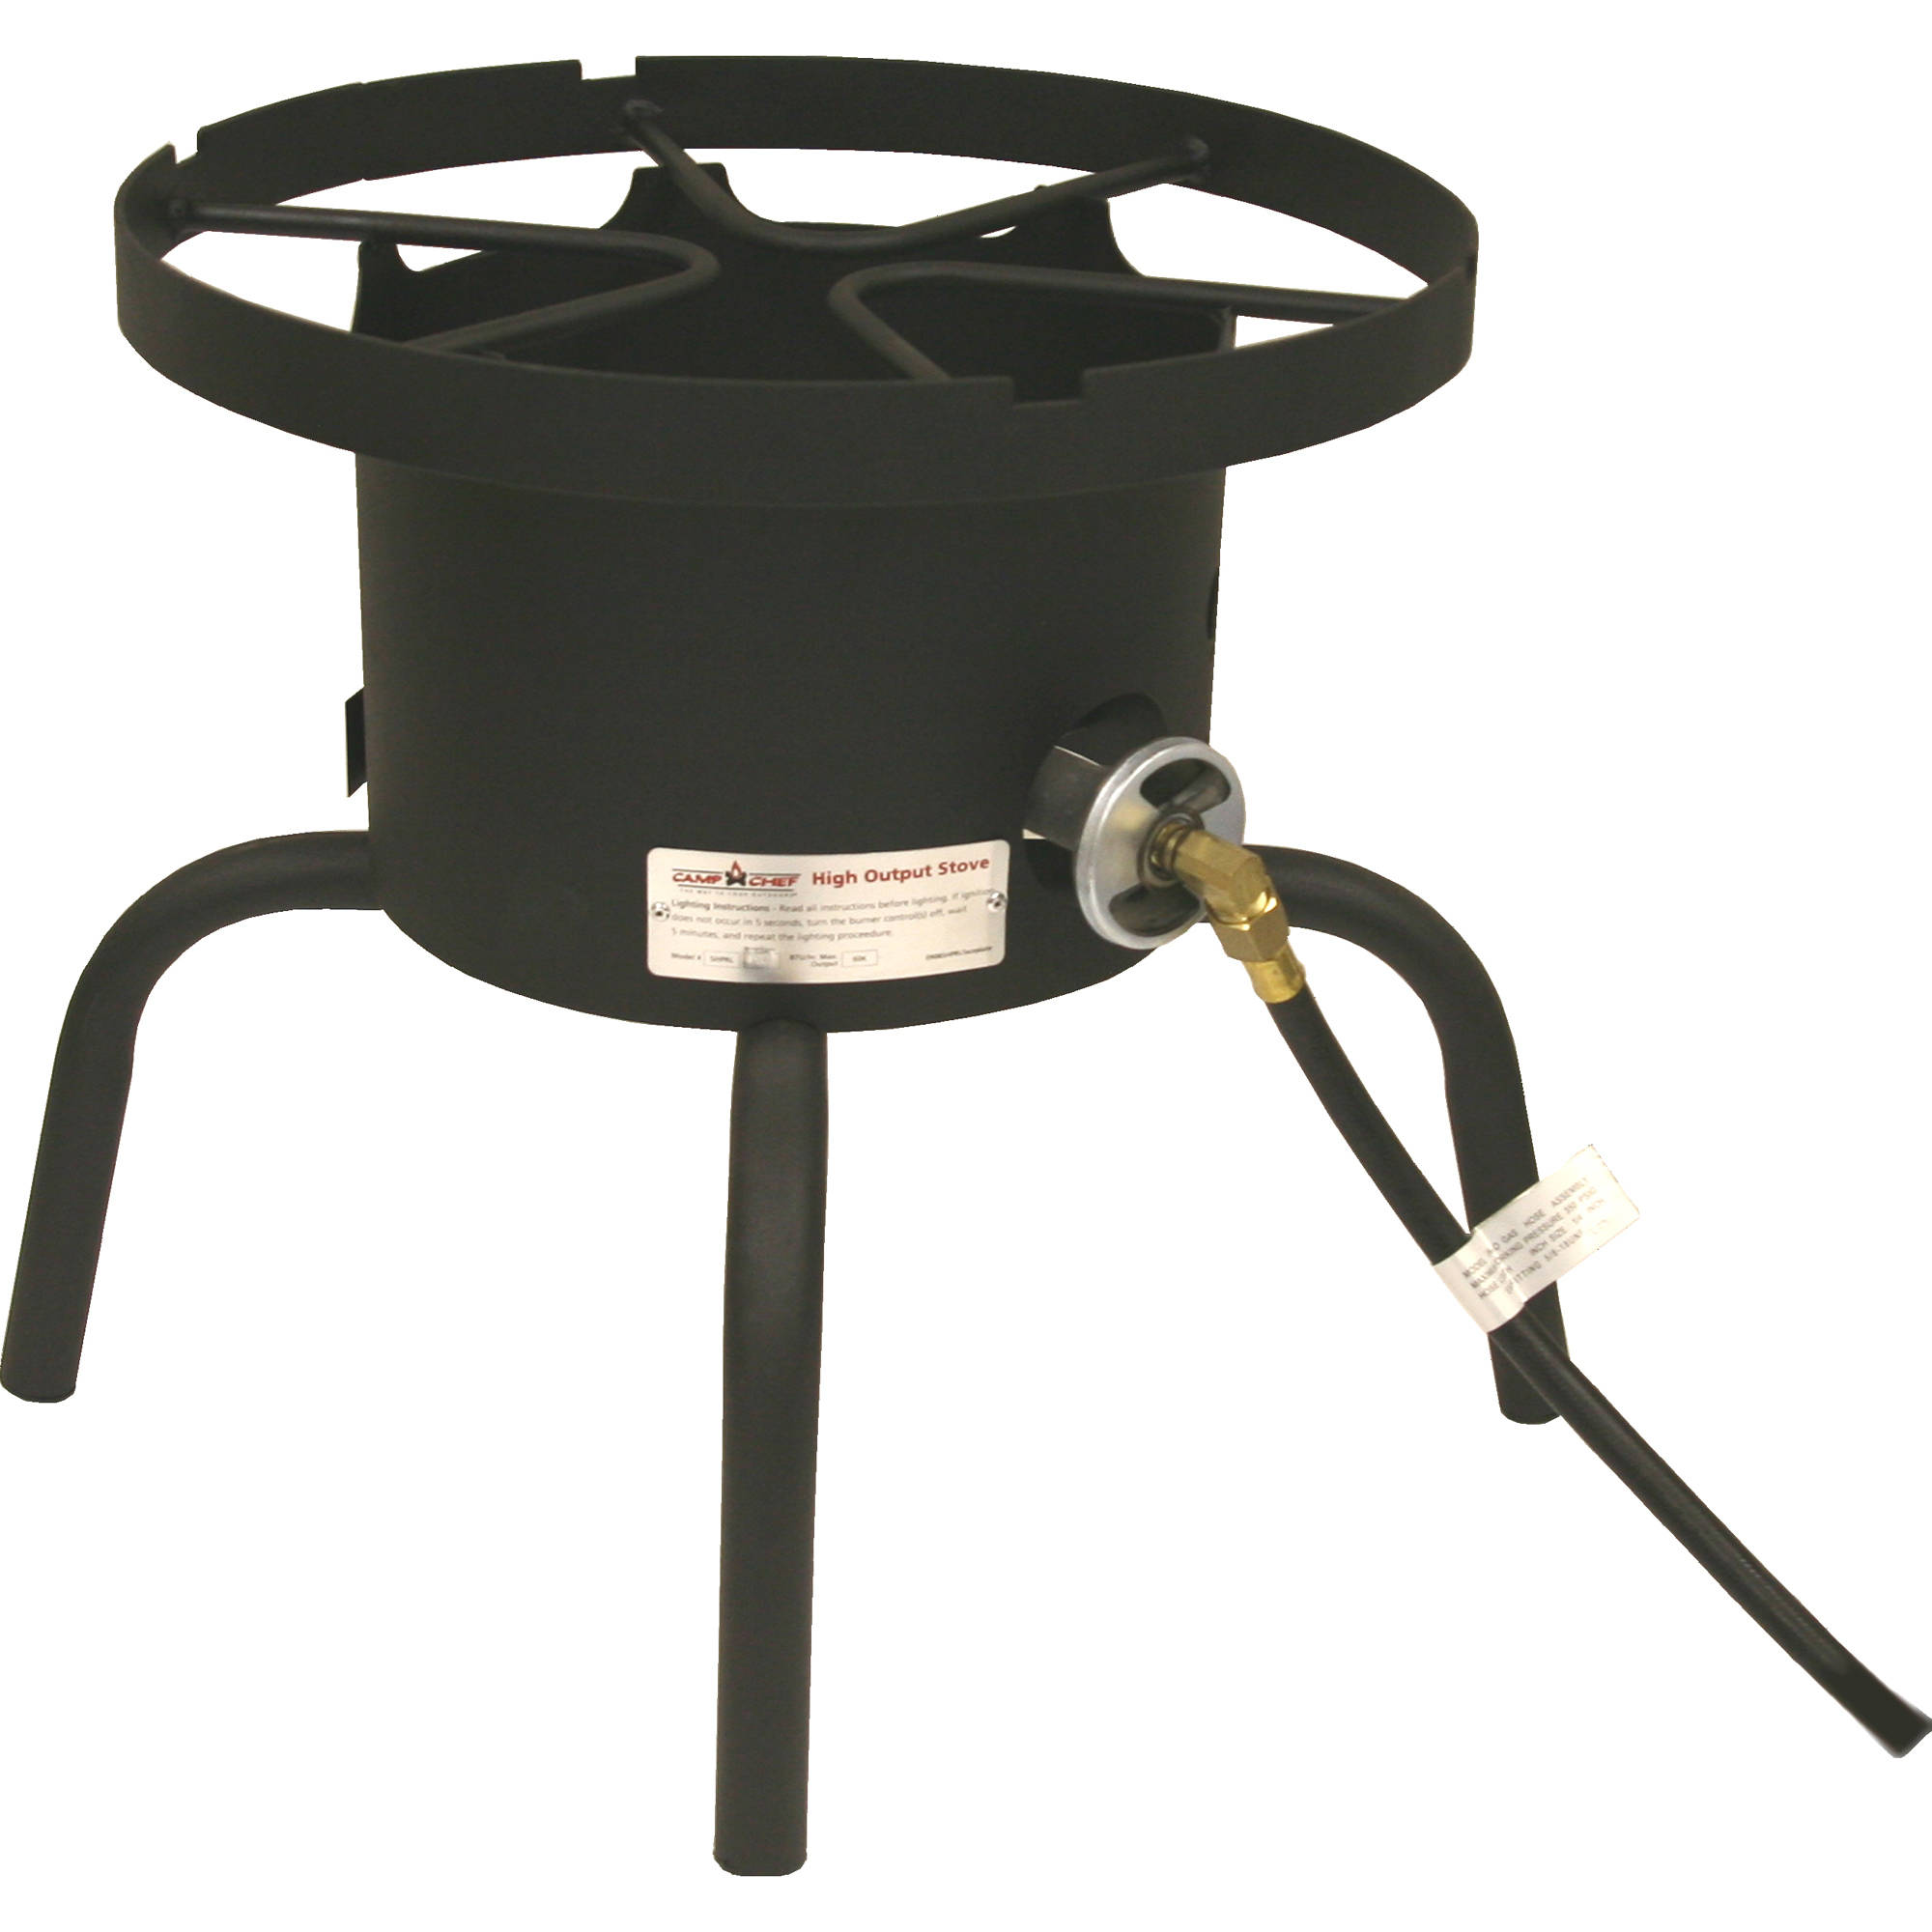 Camp Chef Single burner 60,000 BTU Camp Stove SHP-RL